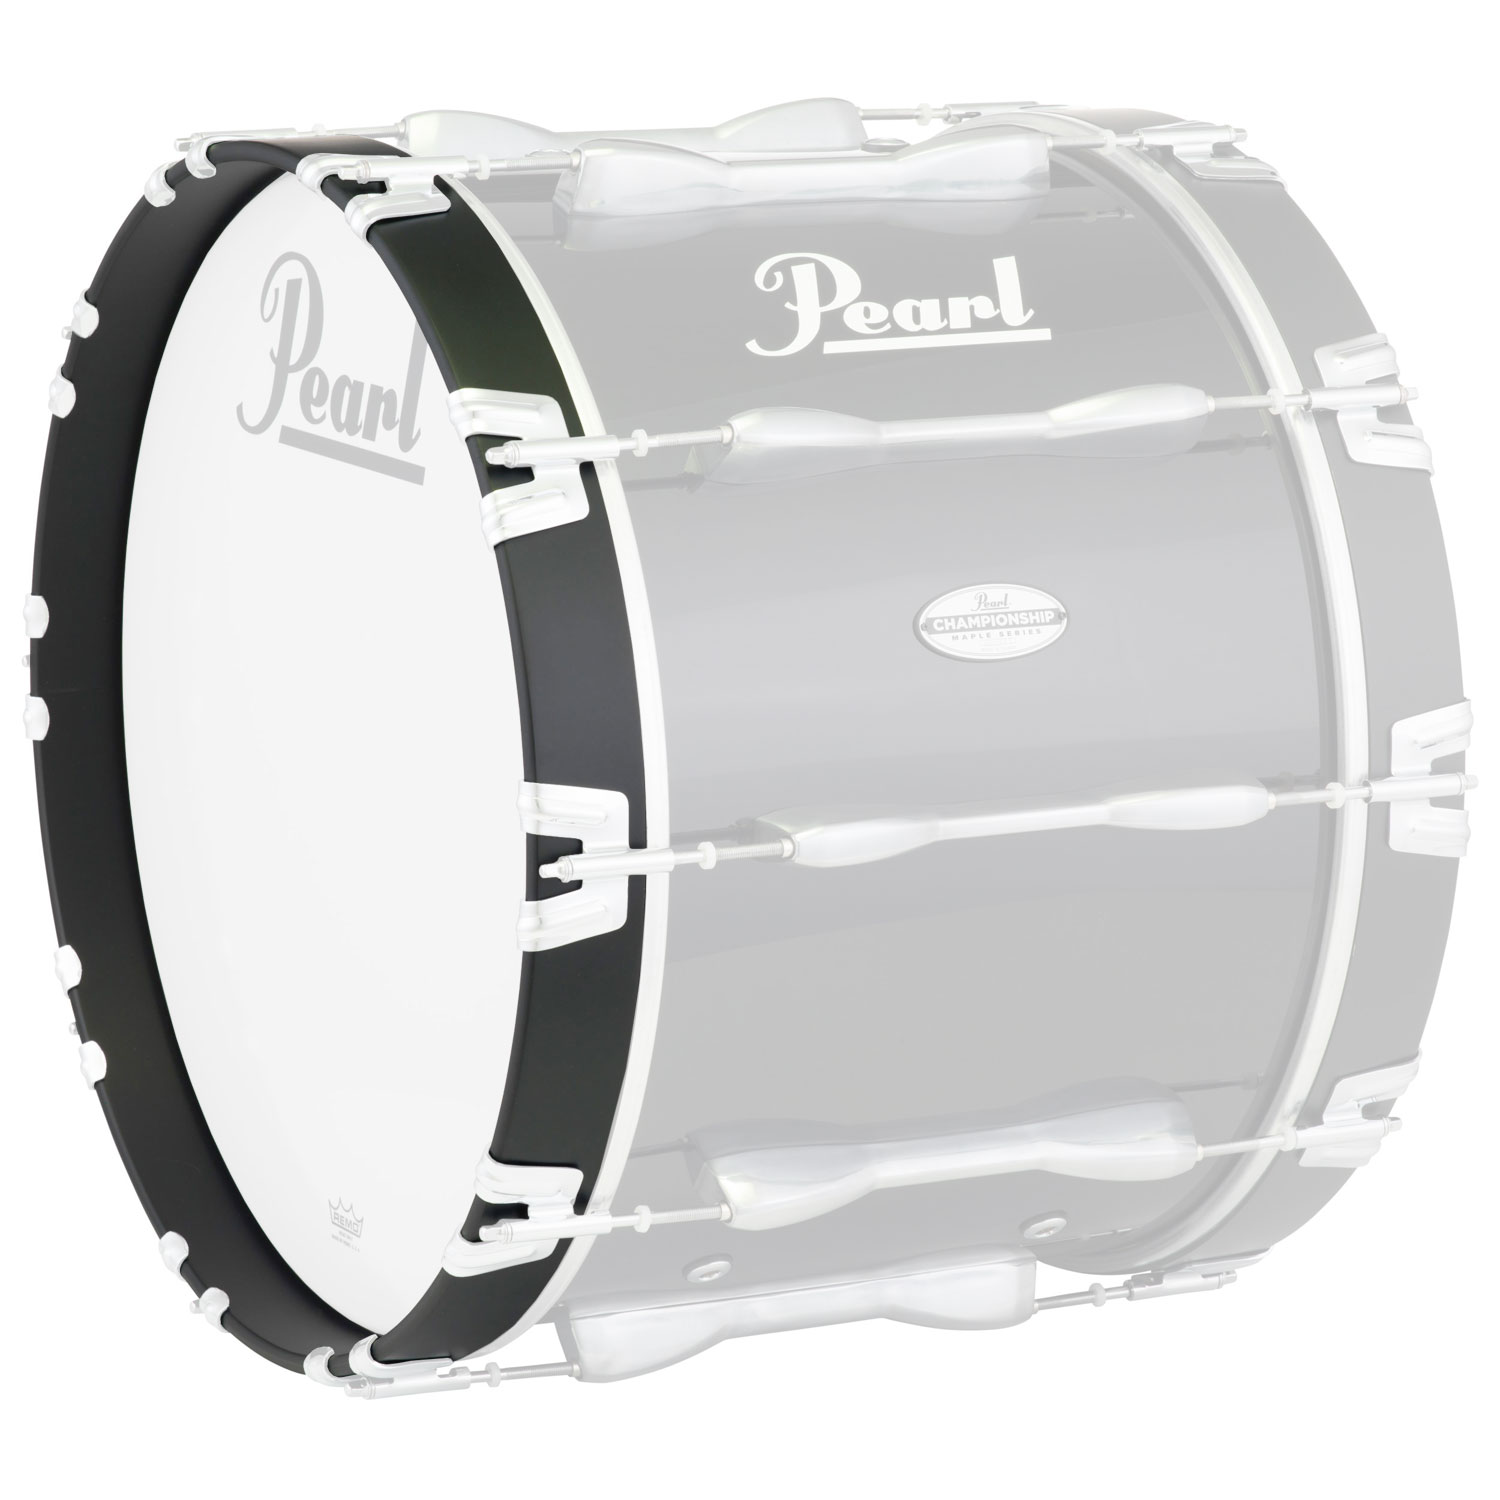 "Pearl 24"" Championship Bass Hoop, Gloss Black, 2"" Wide"